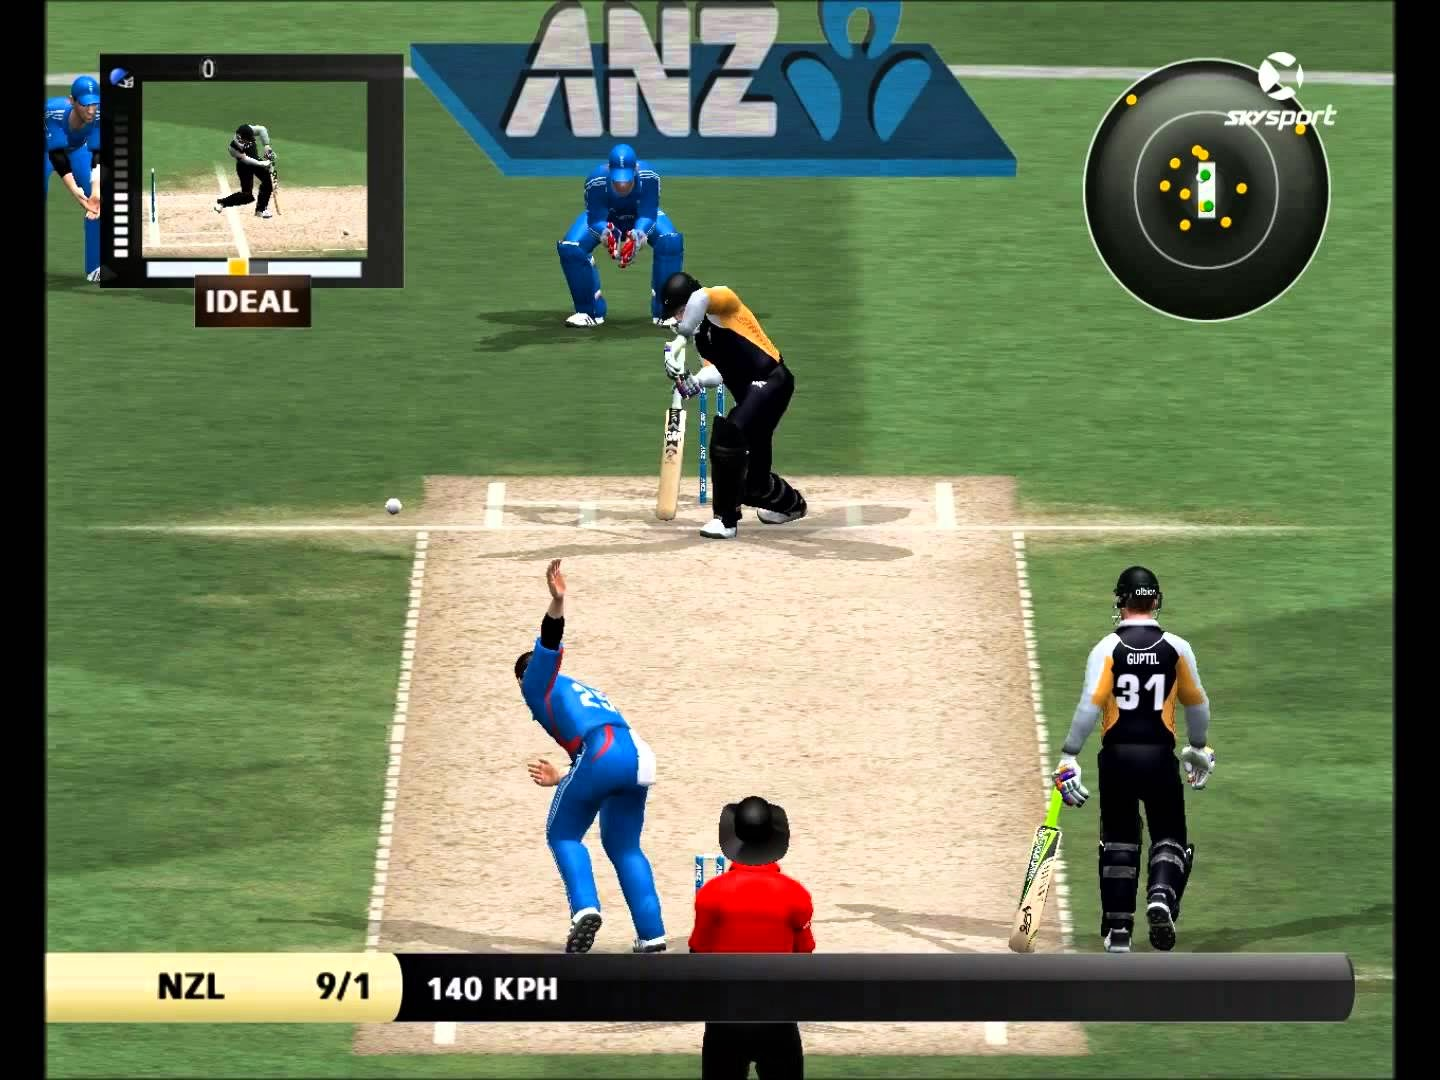 Cricket 2013 PC Game Full Version Free Download